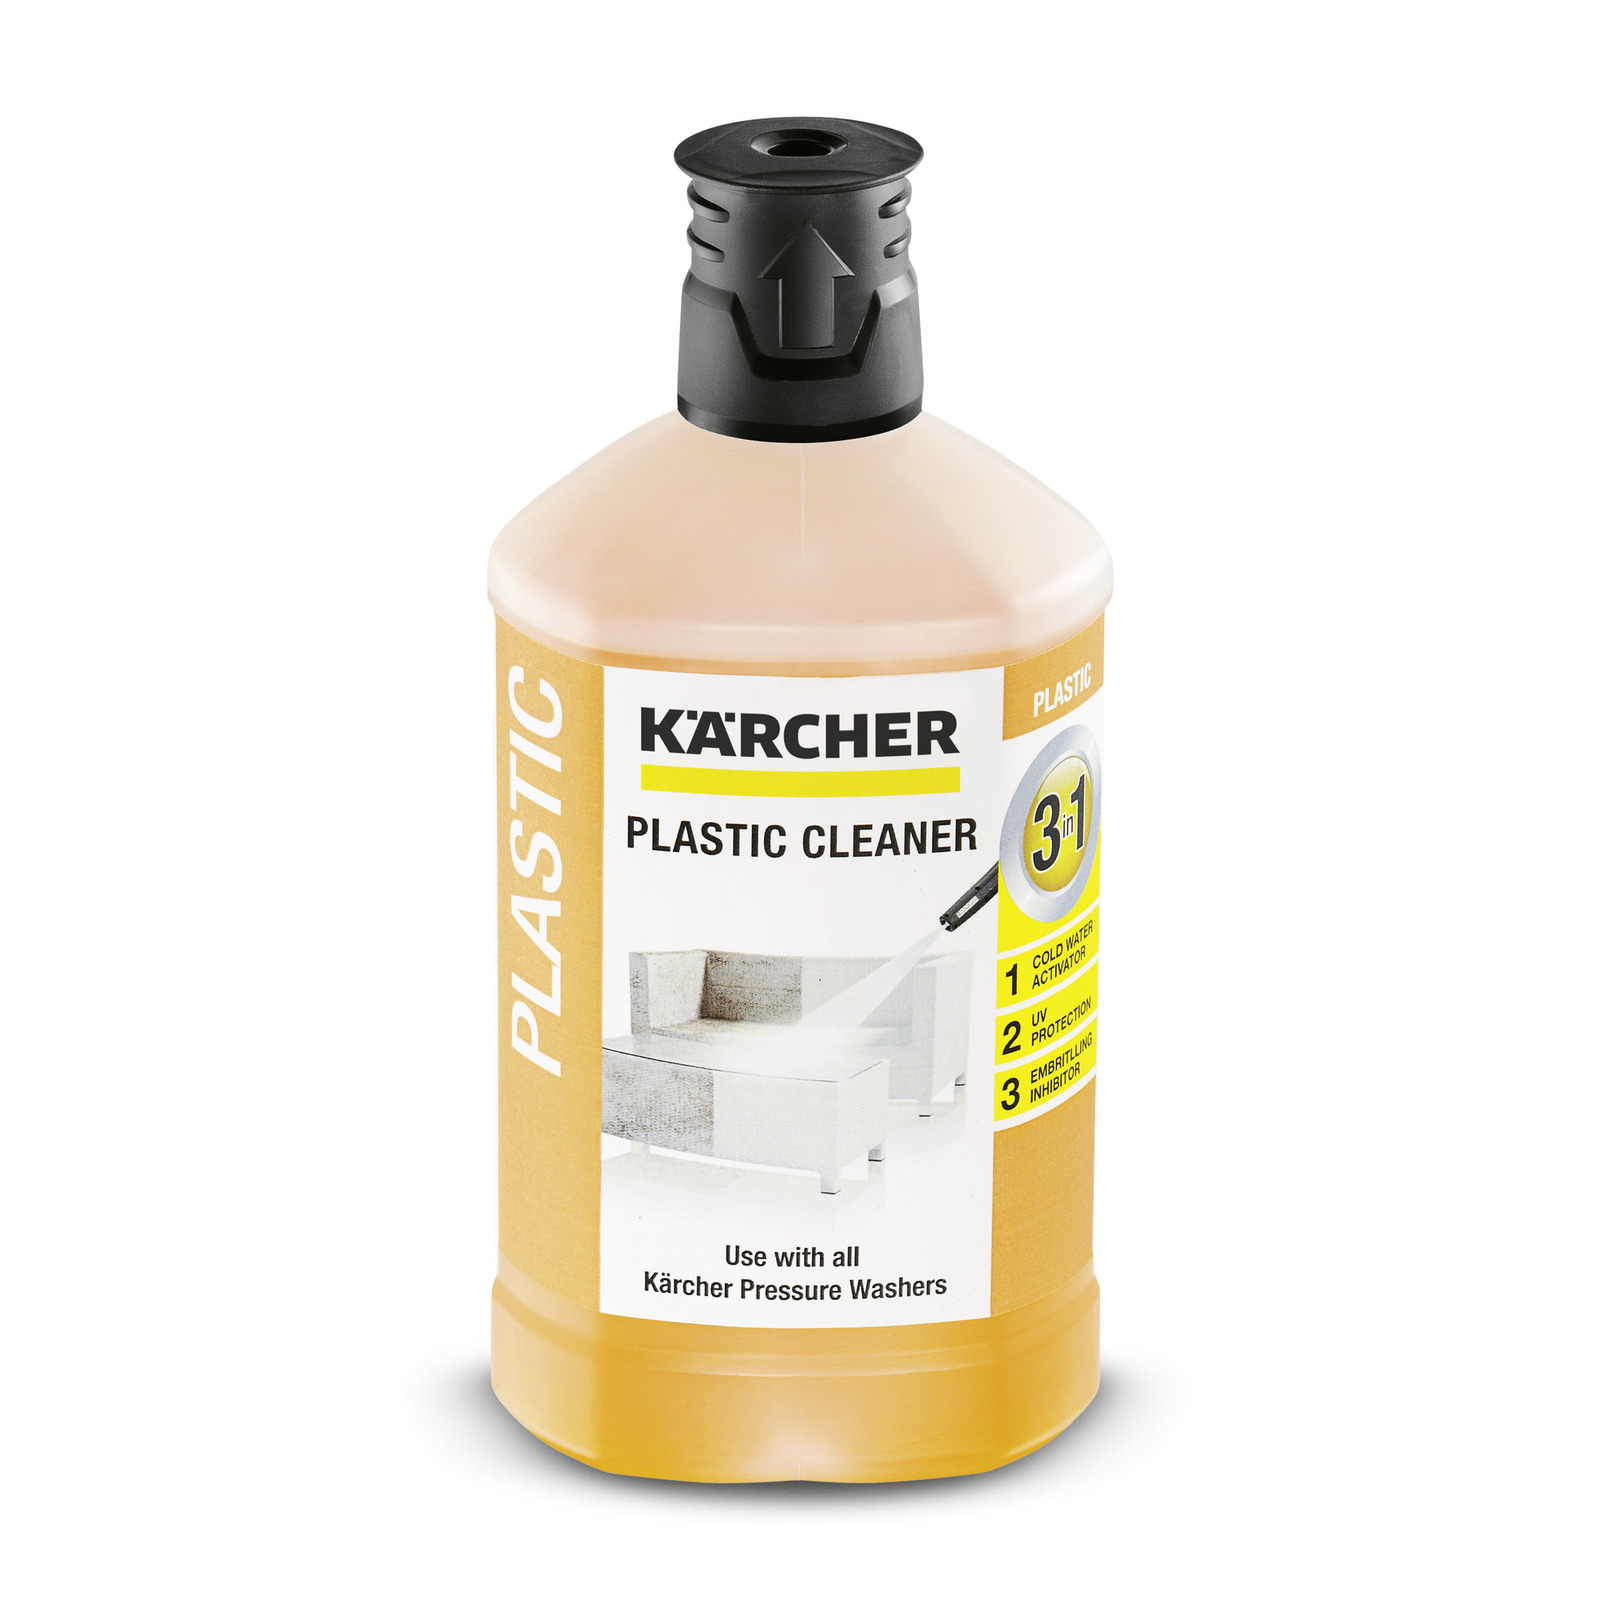 Karcher Plastic cleaner